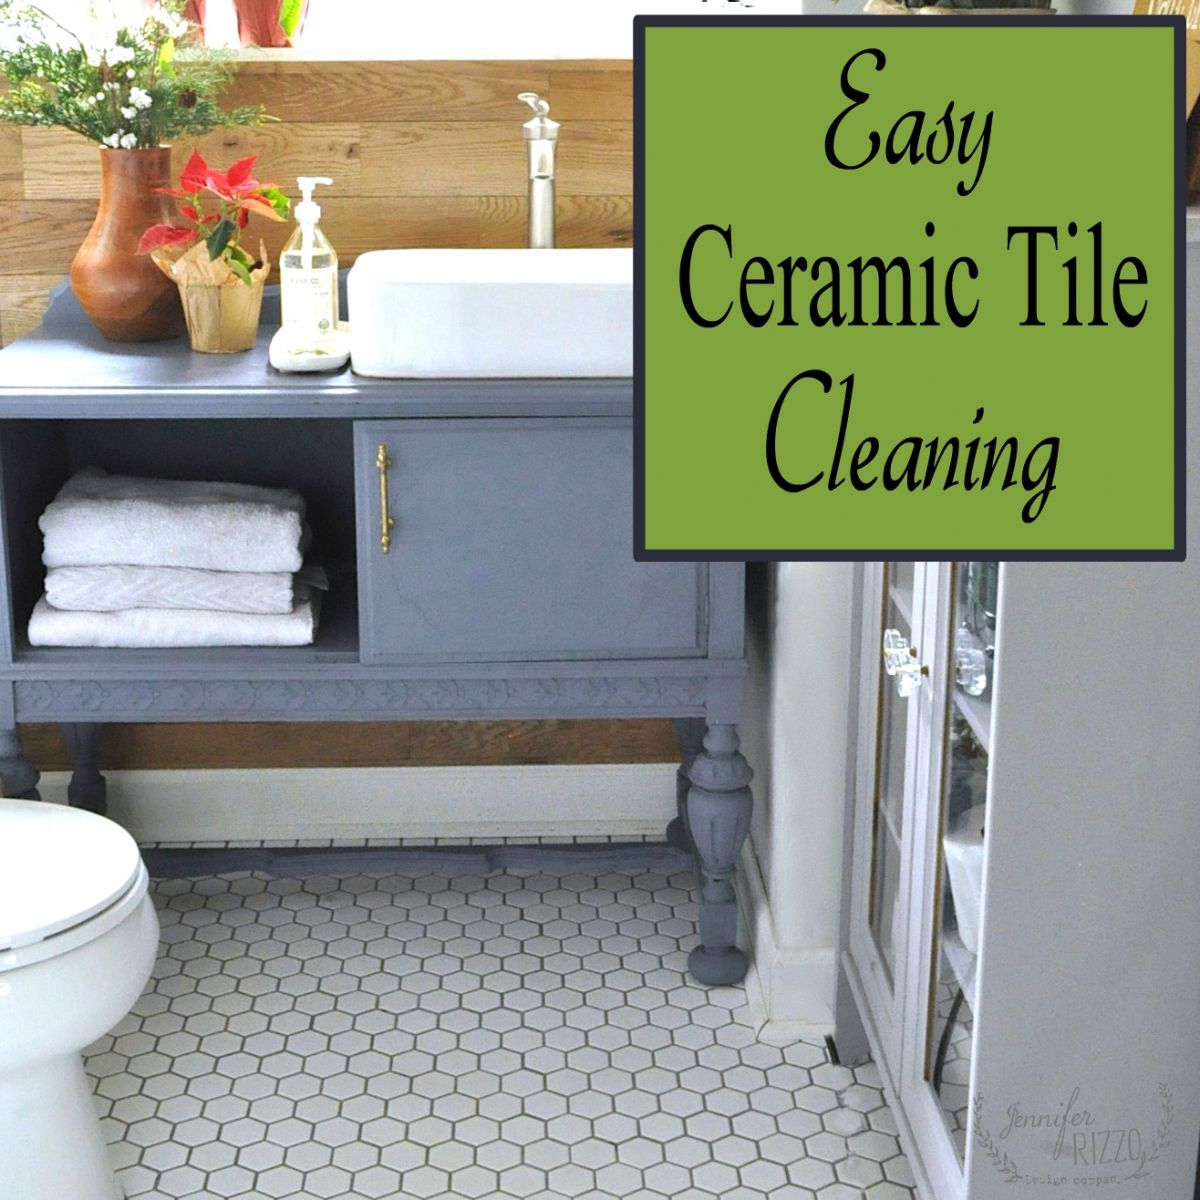 Pre Holiday Ceramic Tile Cleaning With The Homeright Steammachine